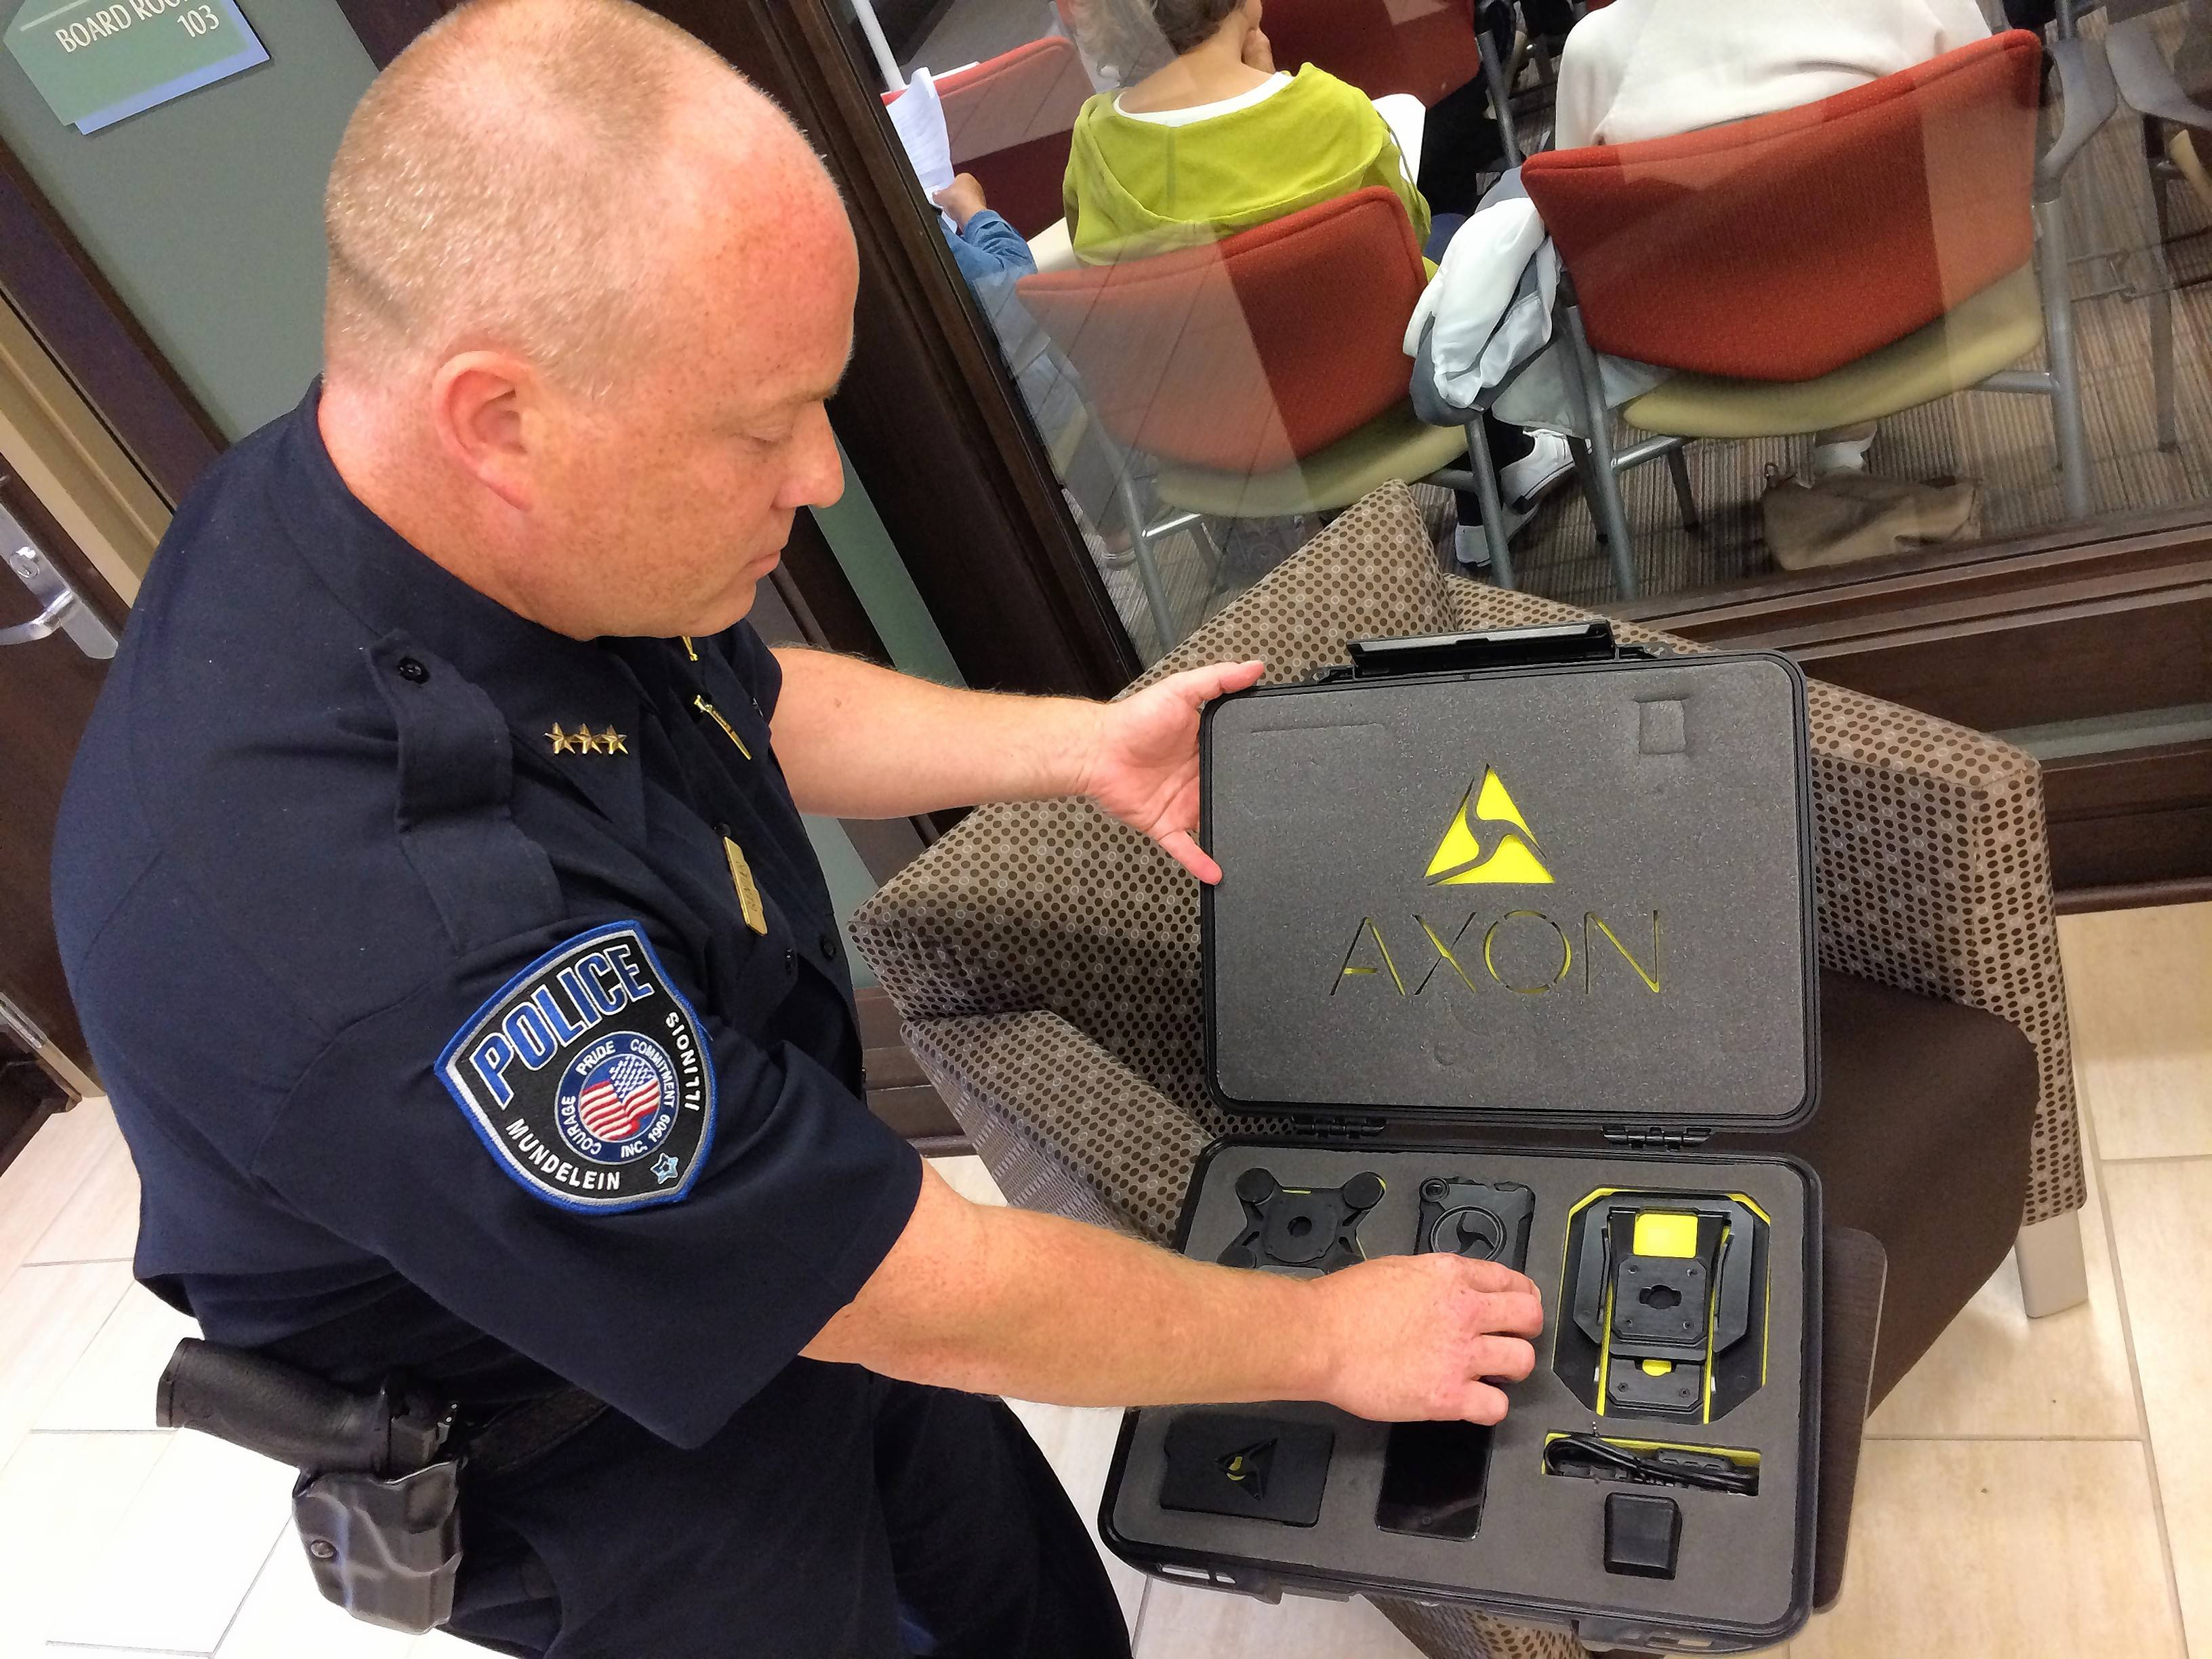 Mundelein police officers to wear body cameras starting this summer